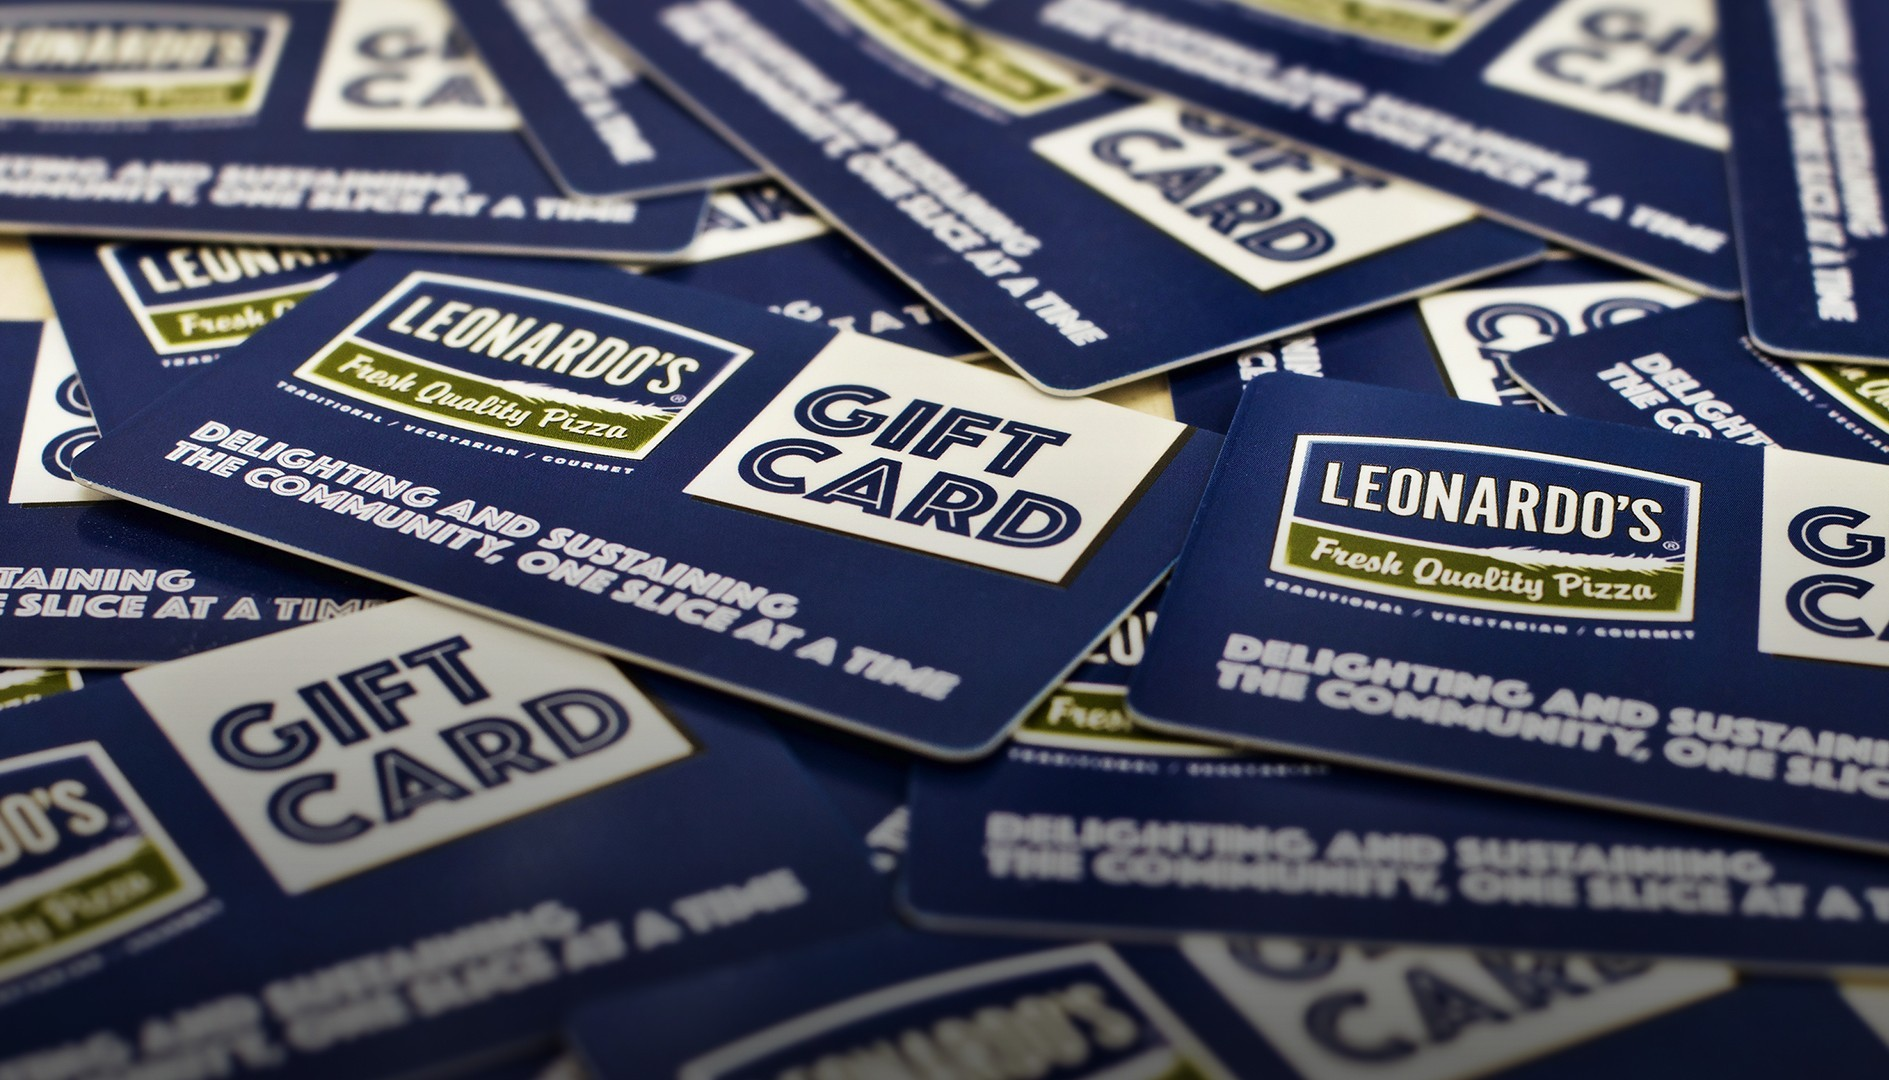 Leonardo's gift card collection